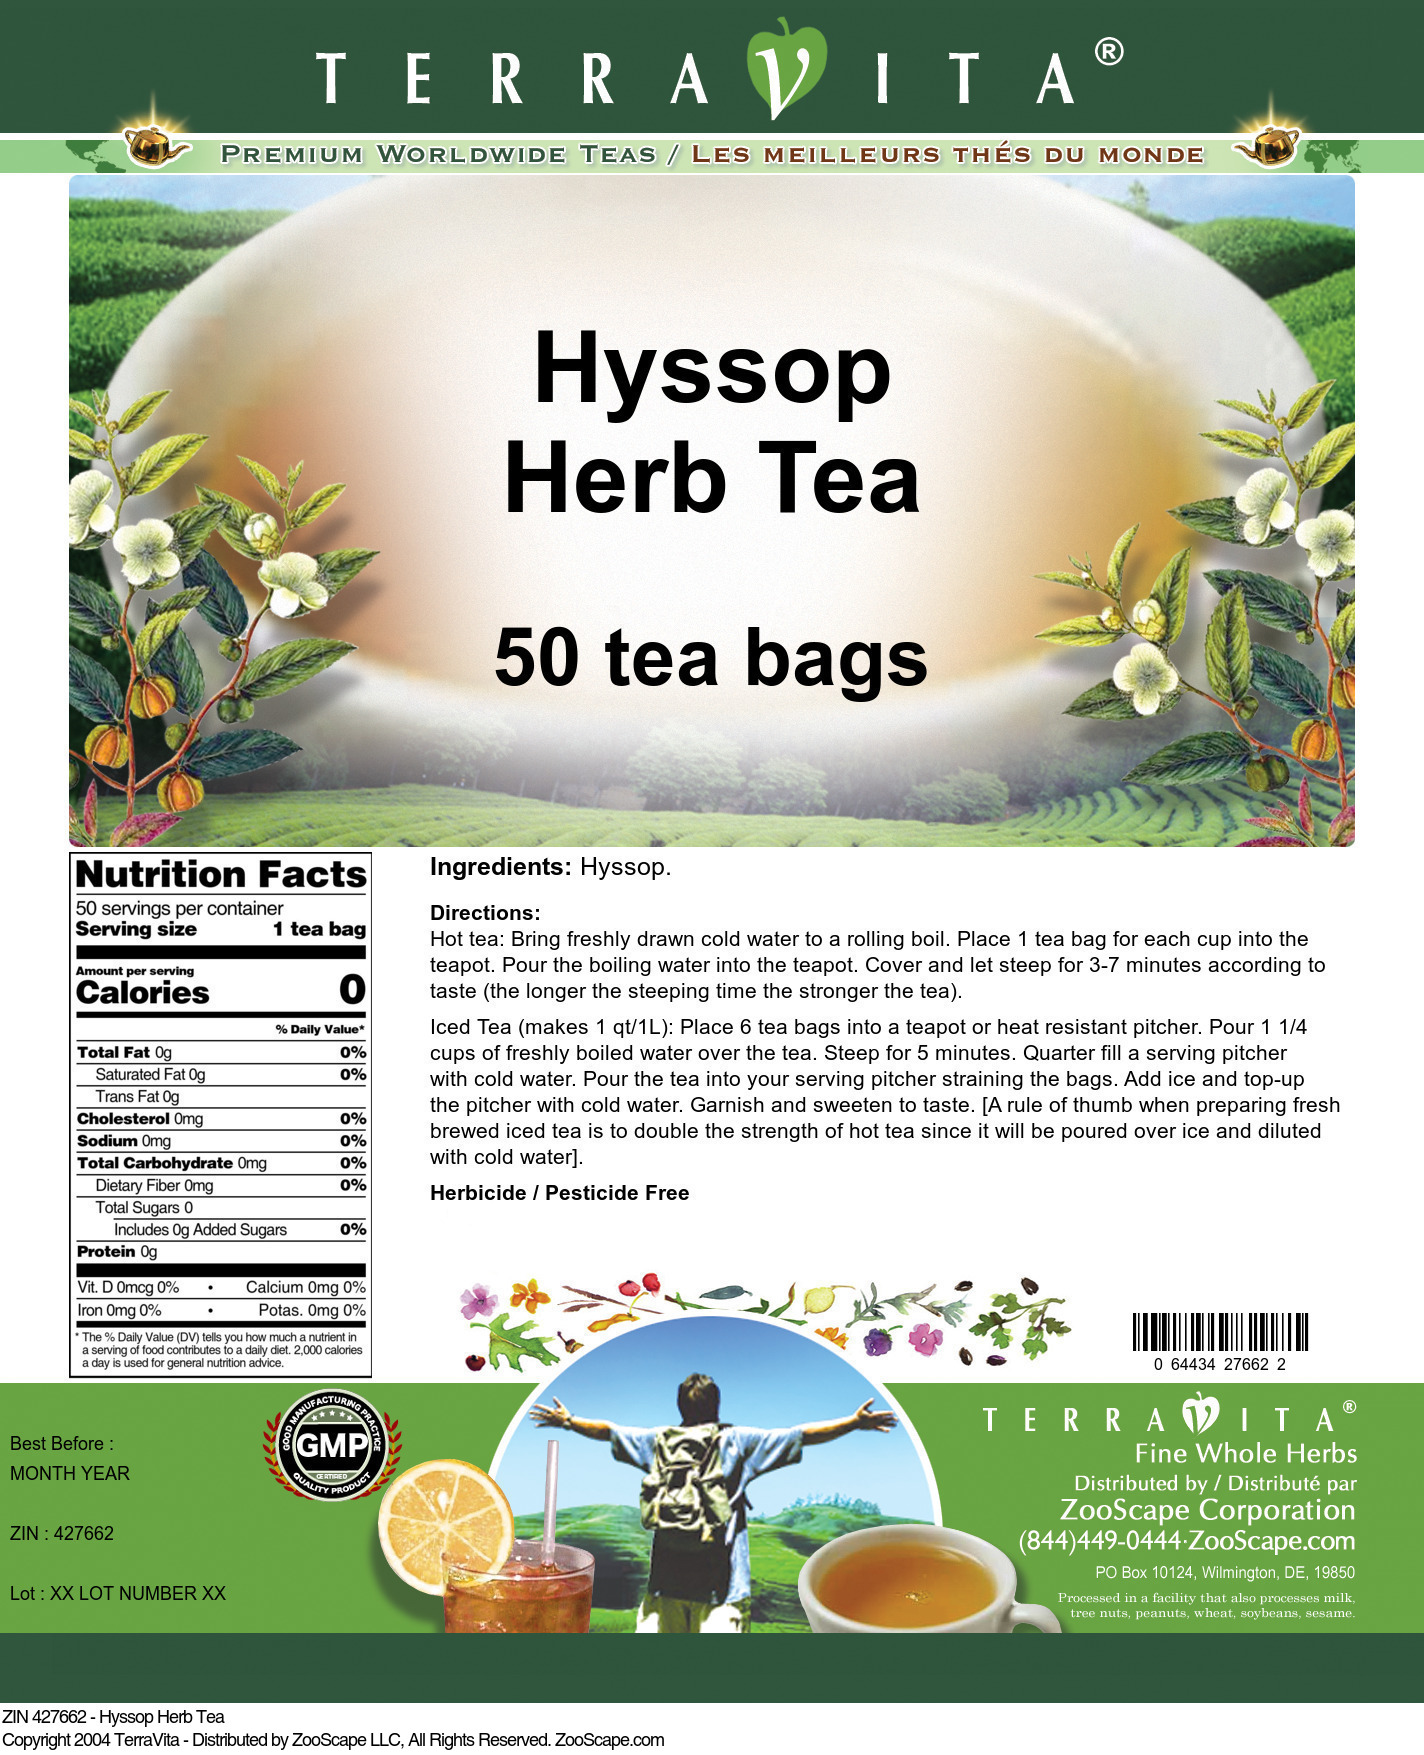 Hyssop Herb Tea - Label